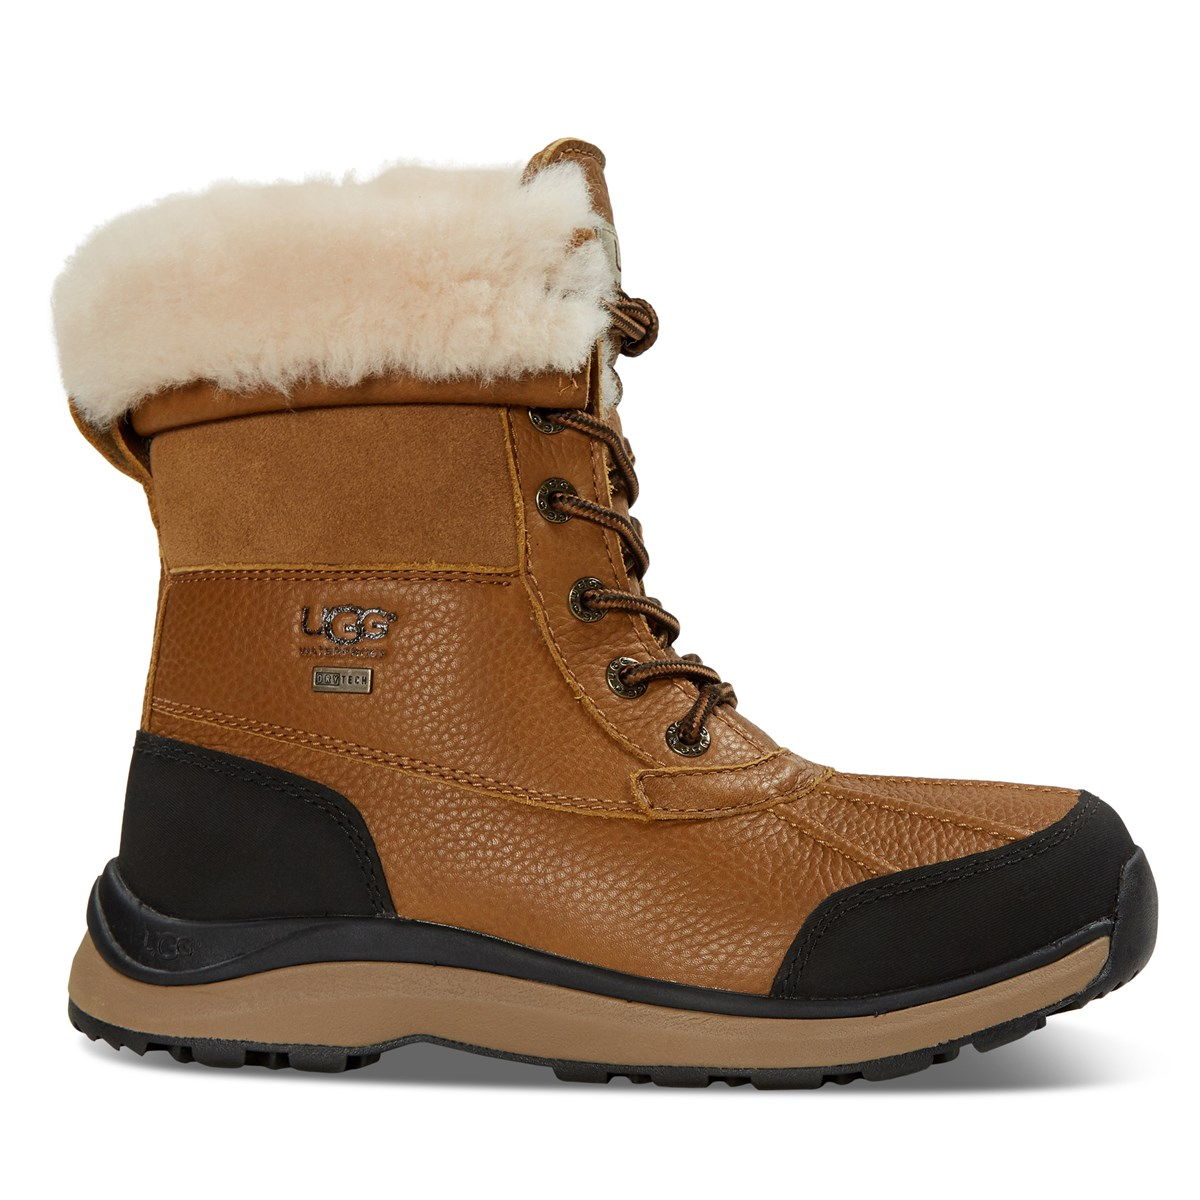 05713be953a Women's Adirondack III Boots in Brown